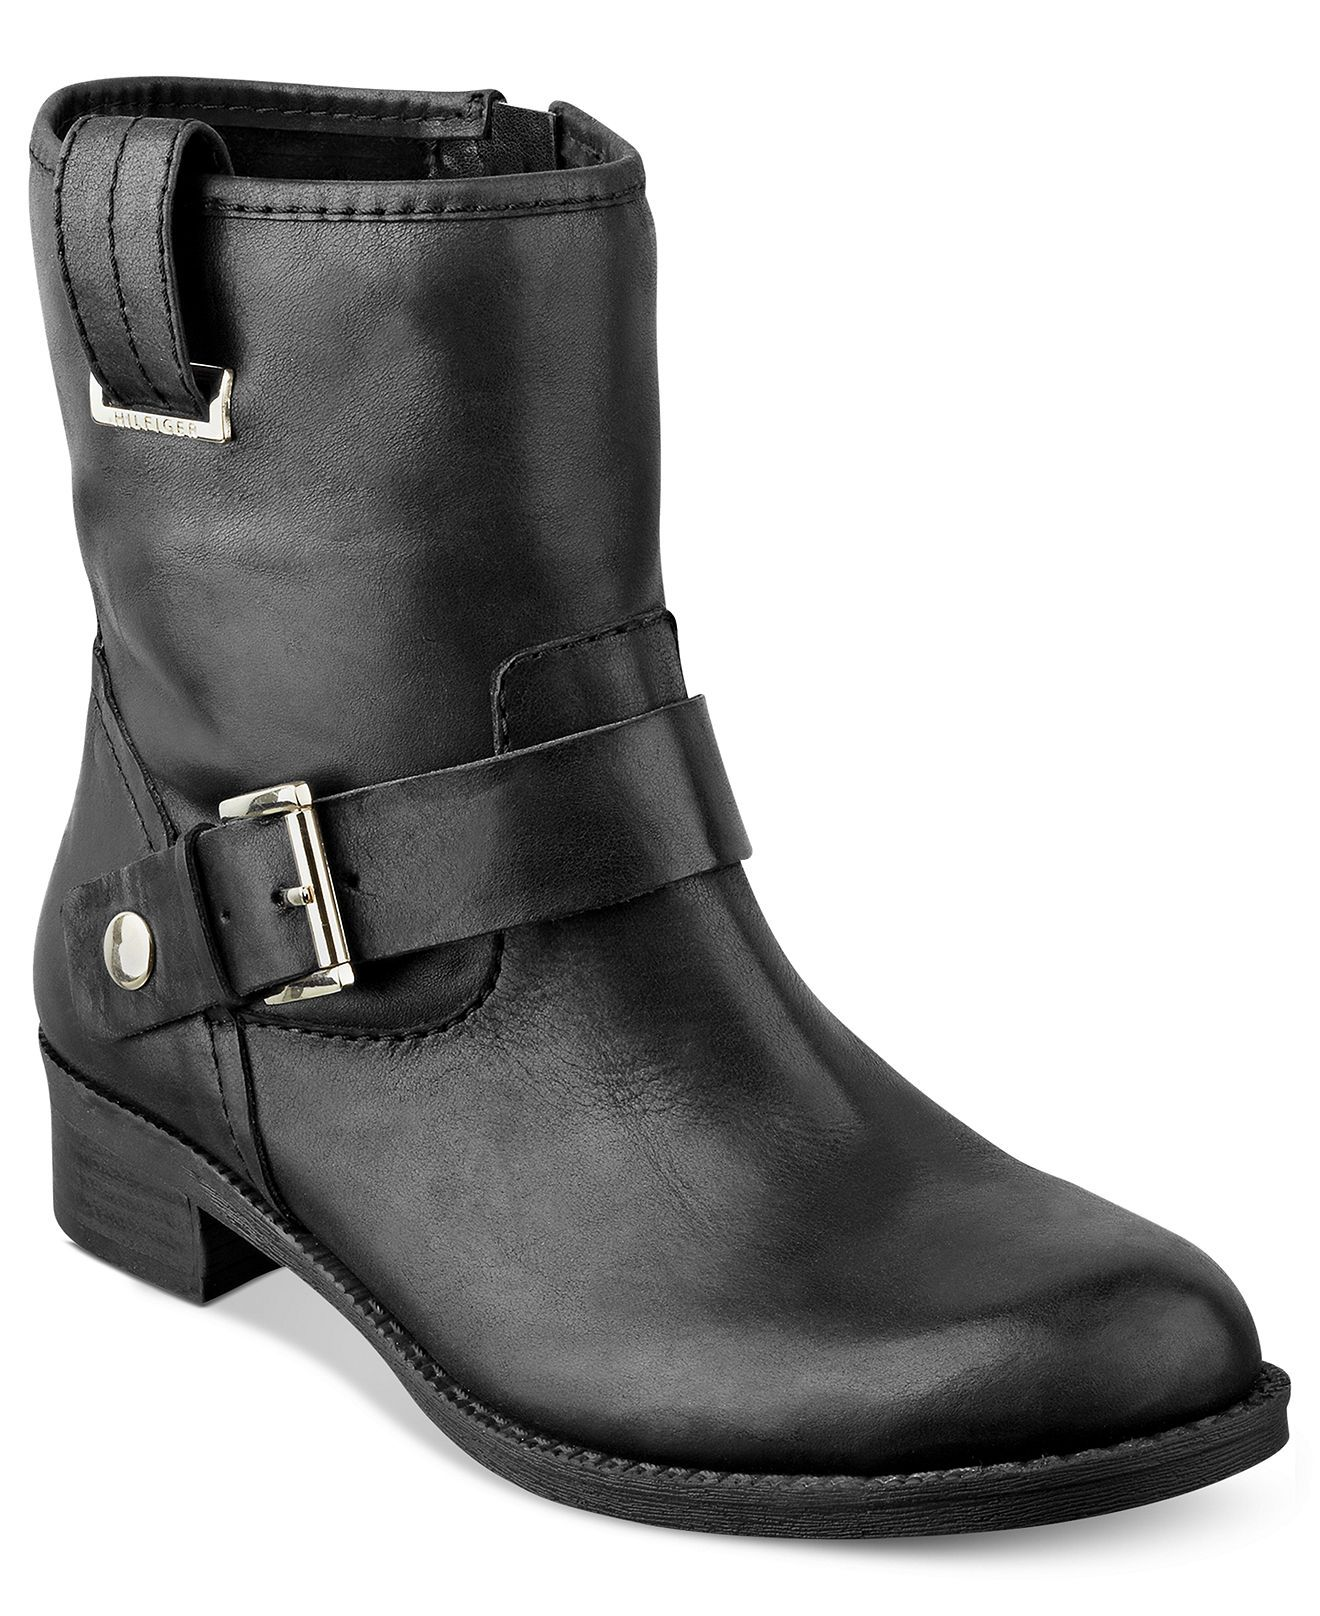 242b355189d5 Tommy Hilfiger Fate Booties - Shoes - Macy s